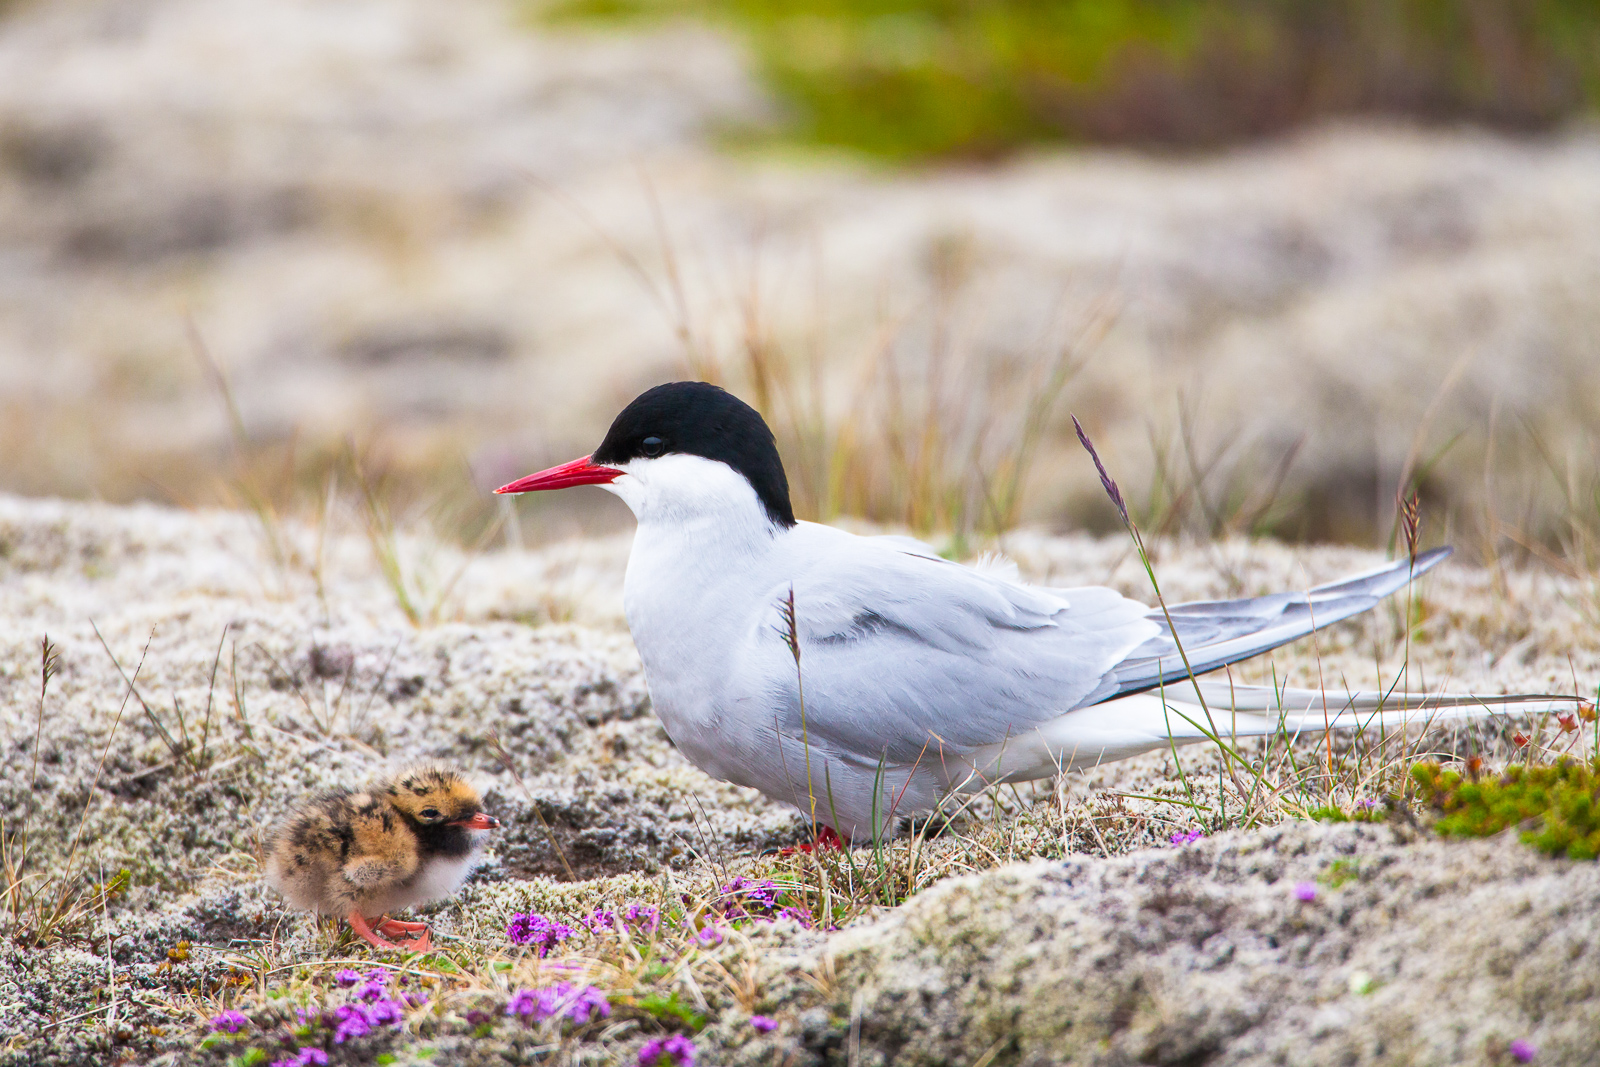 Hatchling on the Heath,Artic Tern,Horizontal,Iceland,Mother,Sterna paradisaea,Summer,bird,chick,wildlife, photo